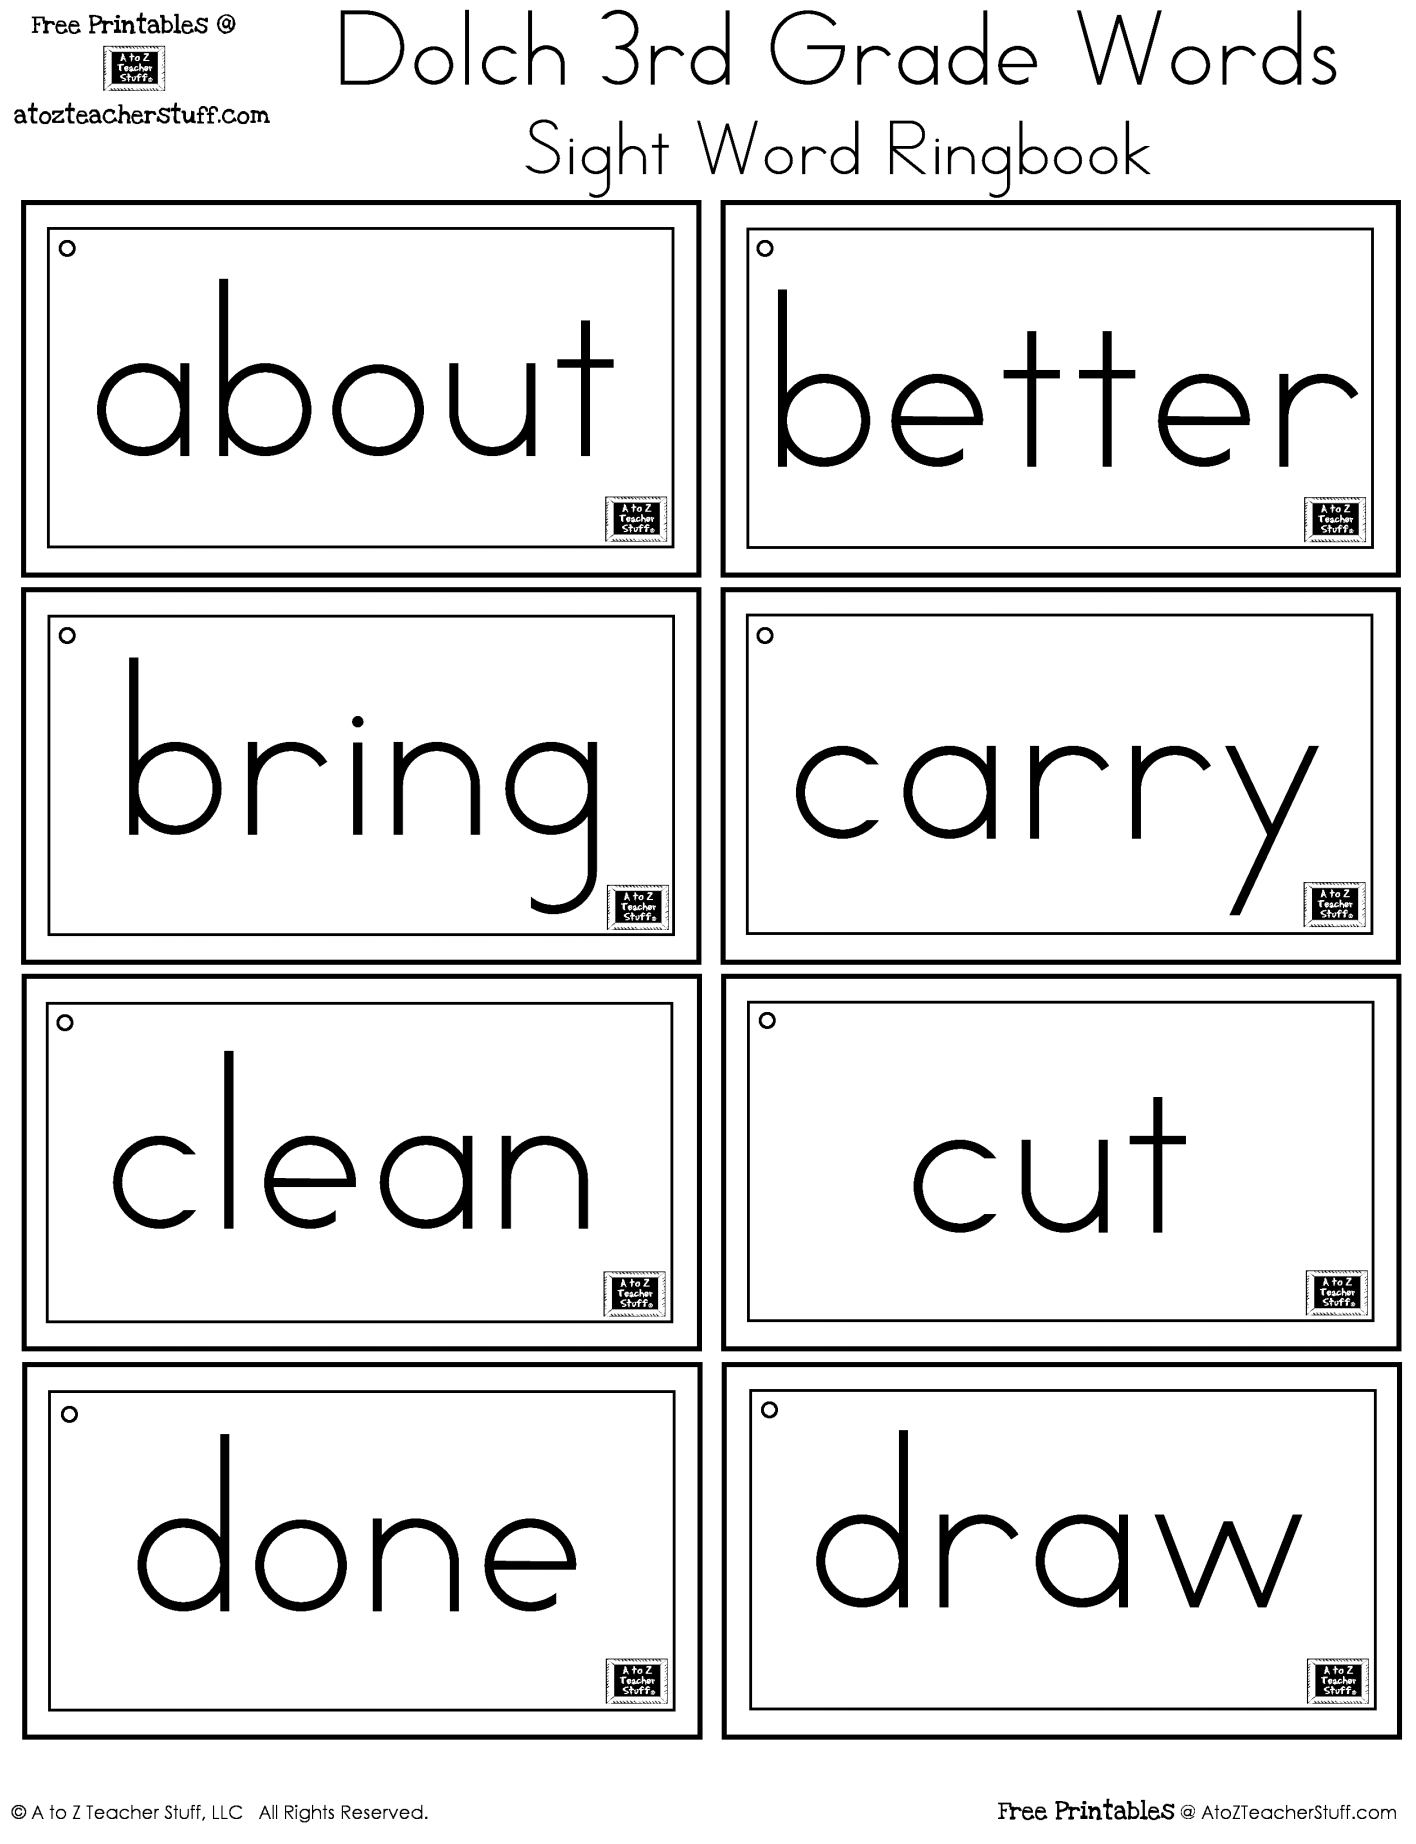 3rd Grade Dolch Words Sight Word Ringbook First Grade Sight Words Sight Word Flashcards Sight Word Worksheets [ 1844 x 1416 Pixel ]